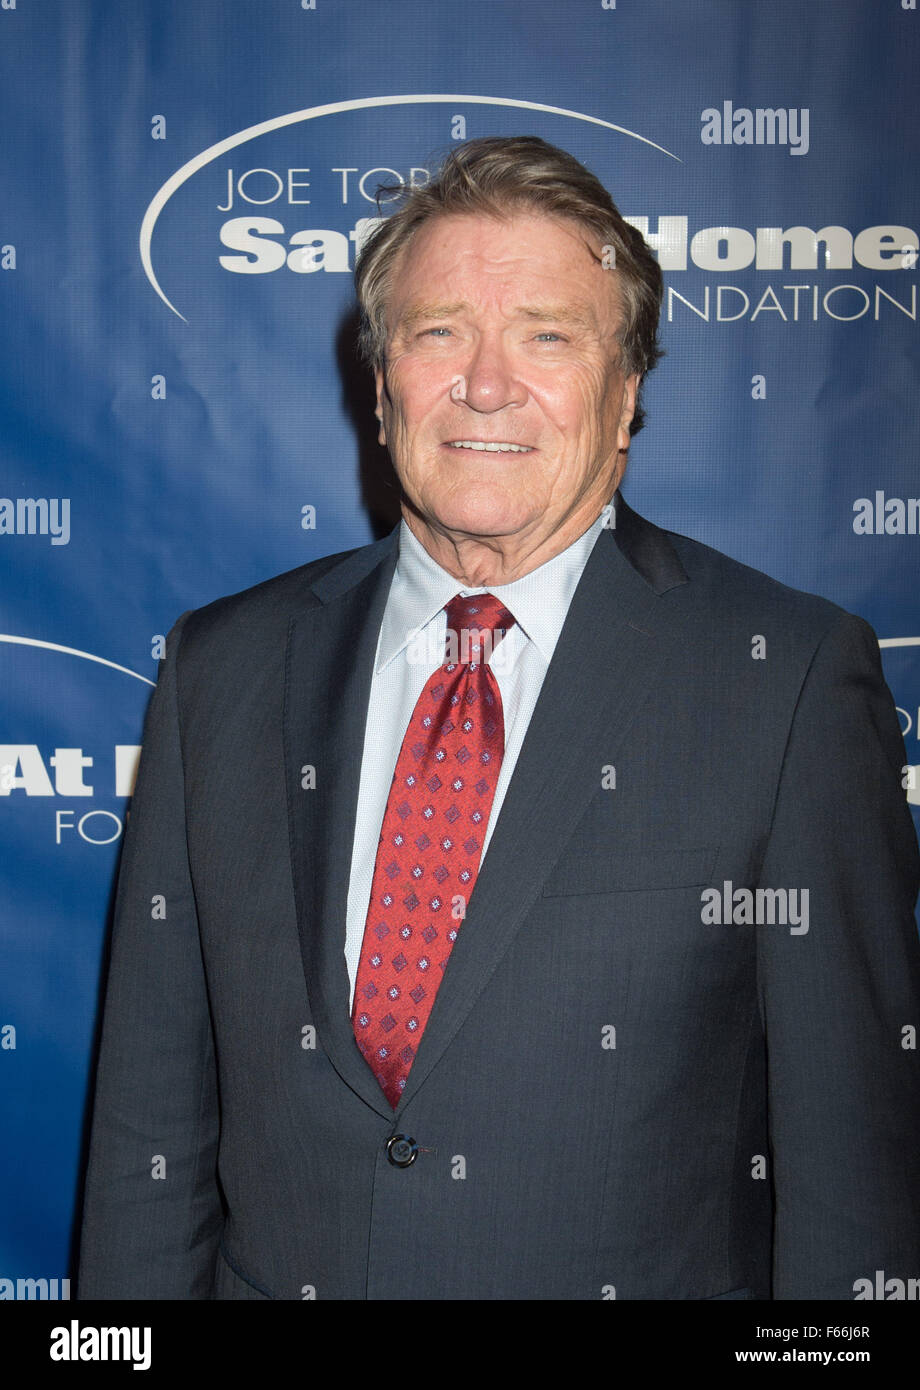 New York, NY, USA. 12th Nov, 2015. STEVE KROFT arrives to the Joe Torre Safe at Home Foundation 13th Annual Gala, - Stock Image